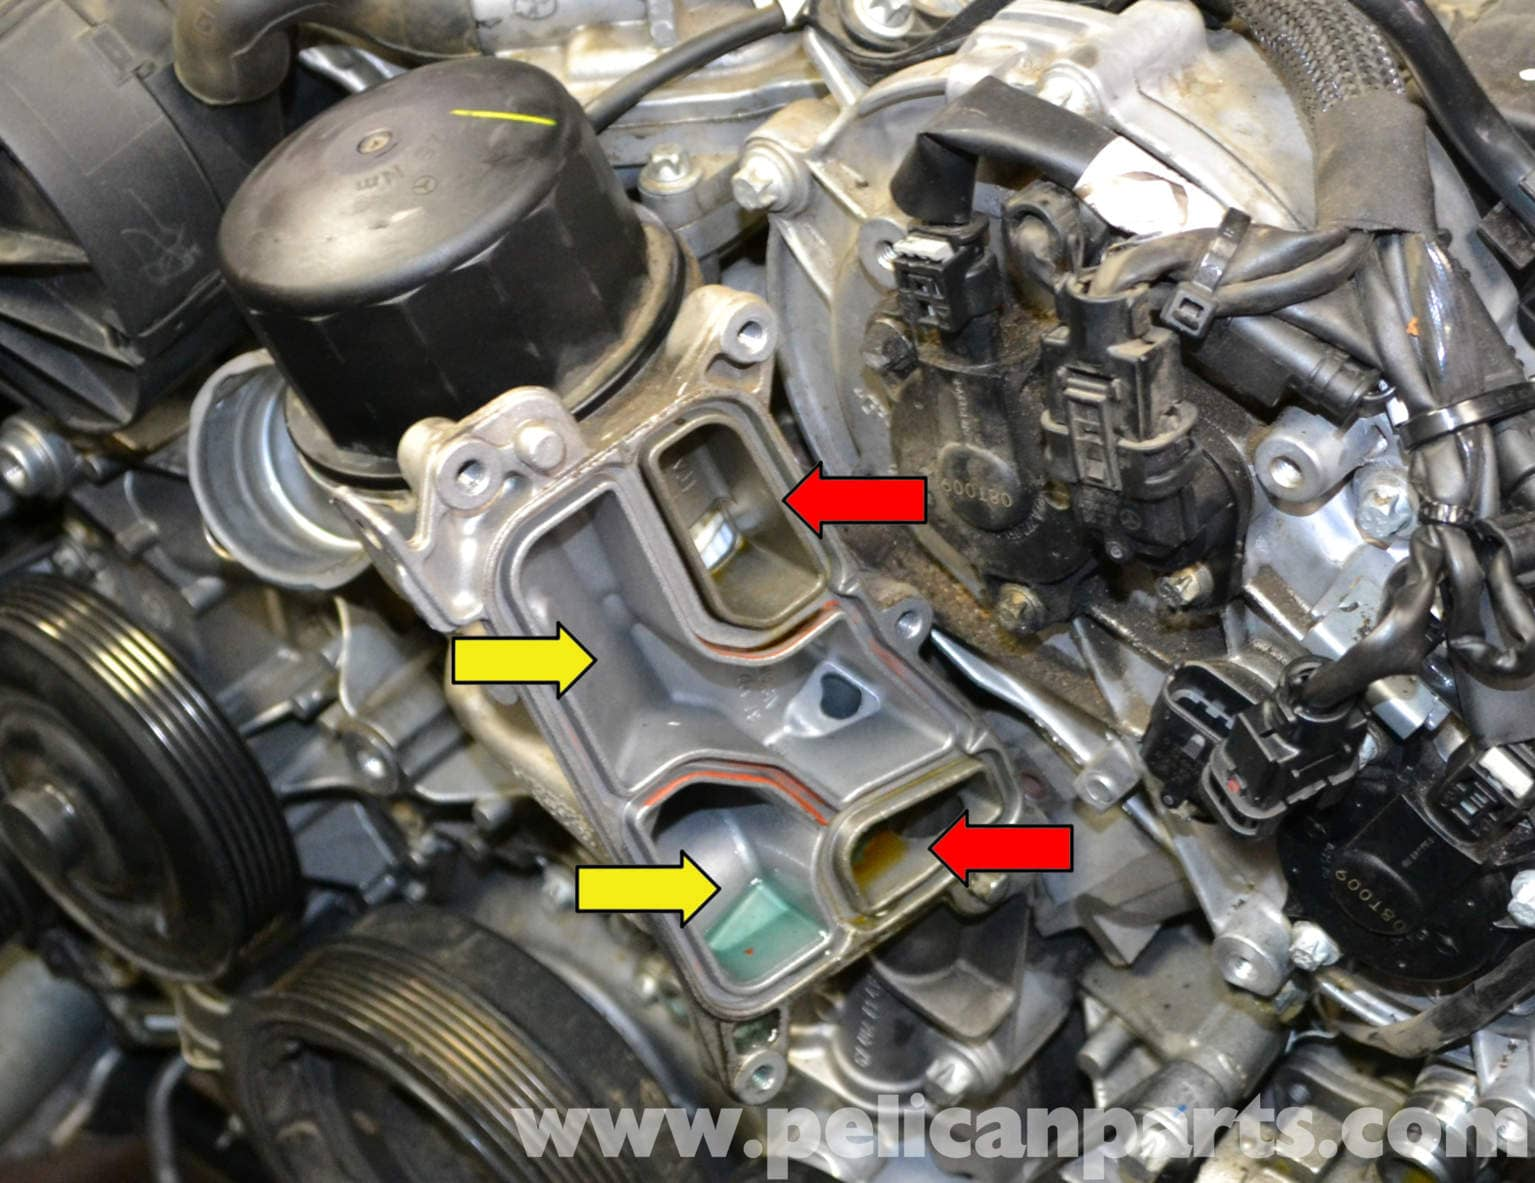 Mercedes Benz W204 Oil Cooler And Seal Replacement 2008